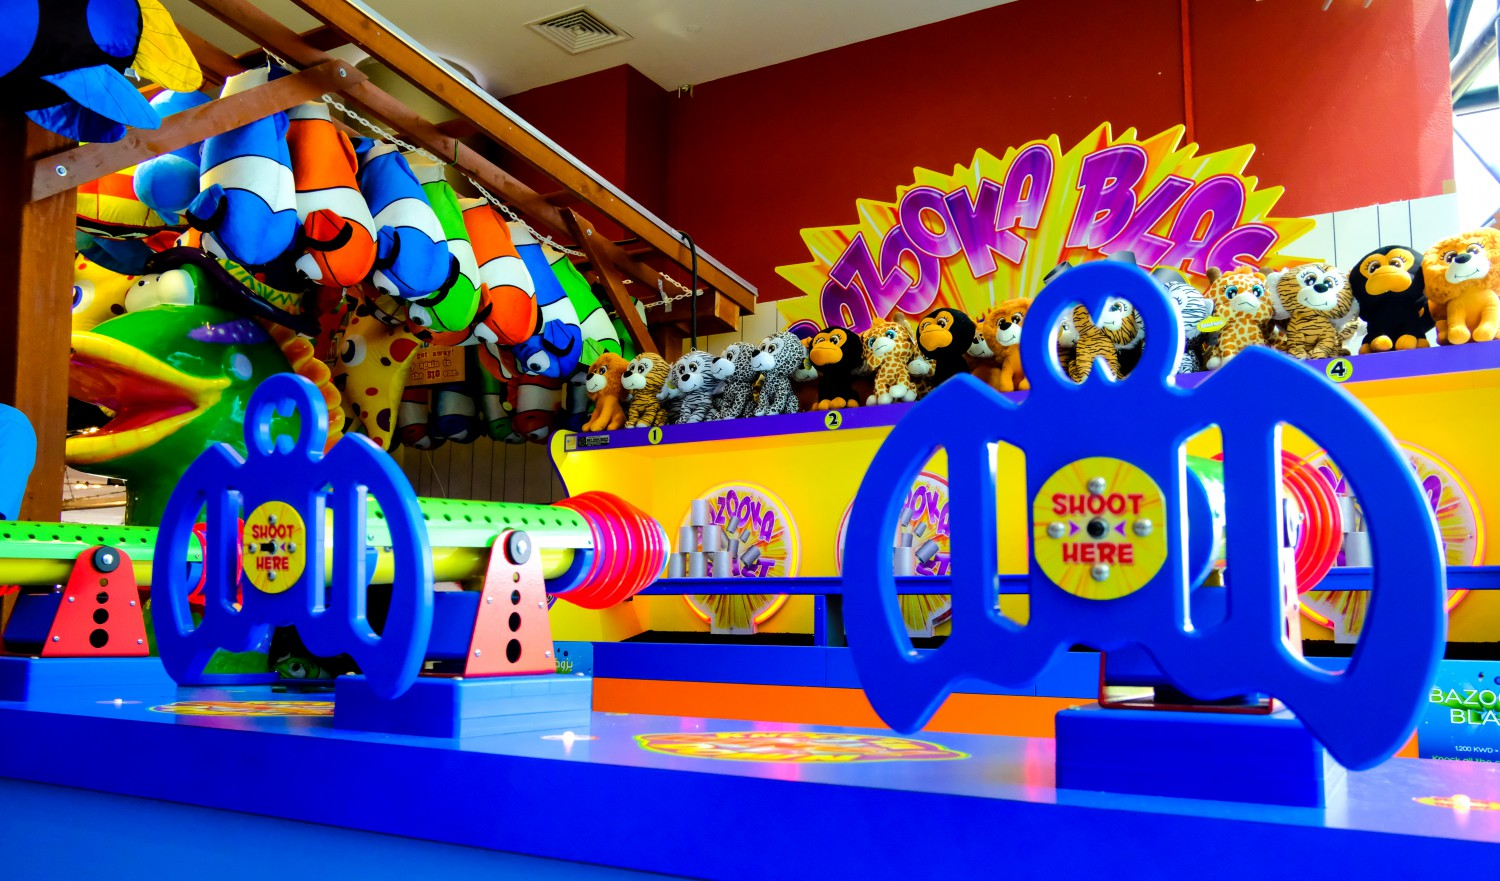 Bazooka Blast game at Magic Planet City Centre Mirdif South